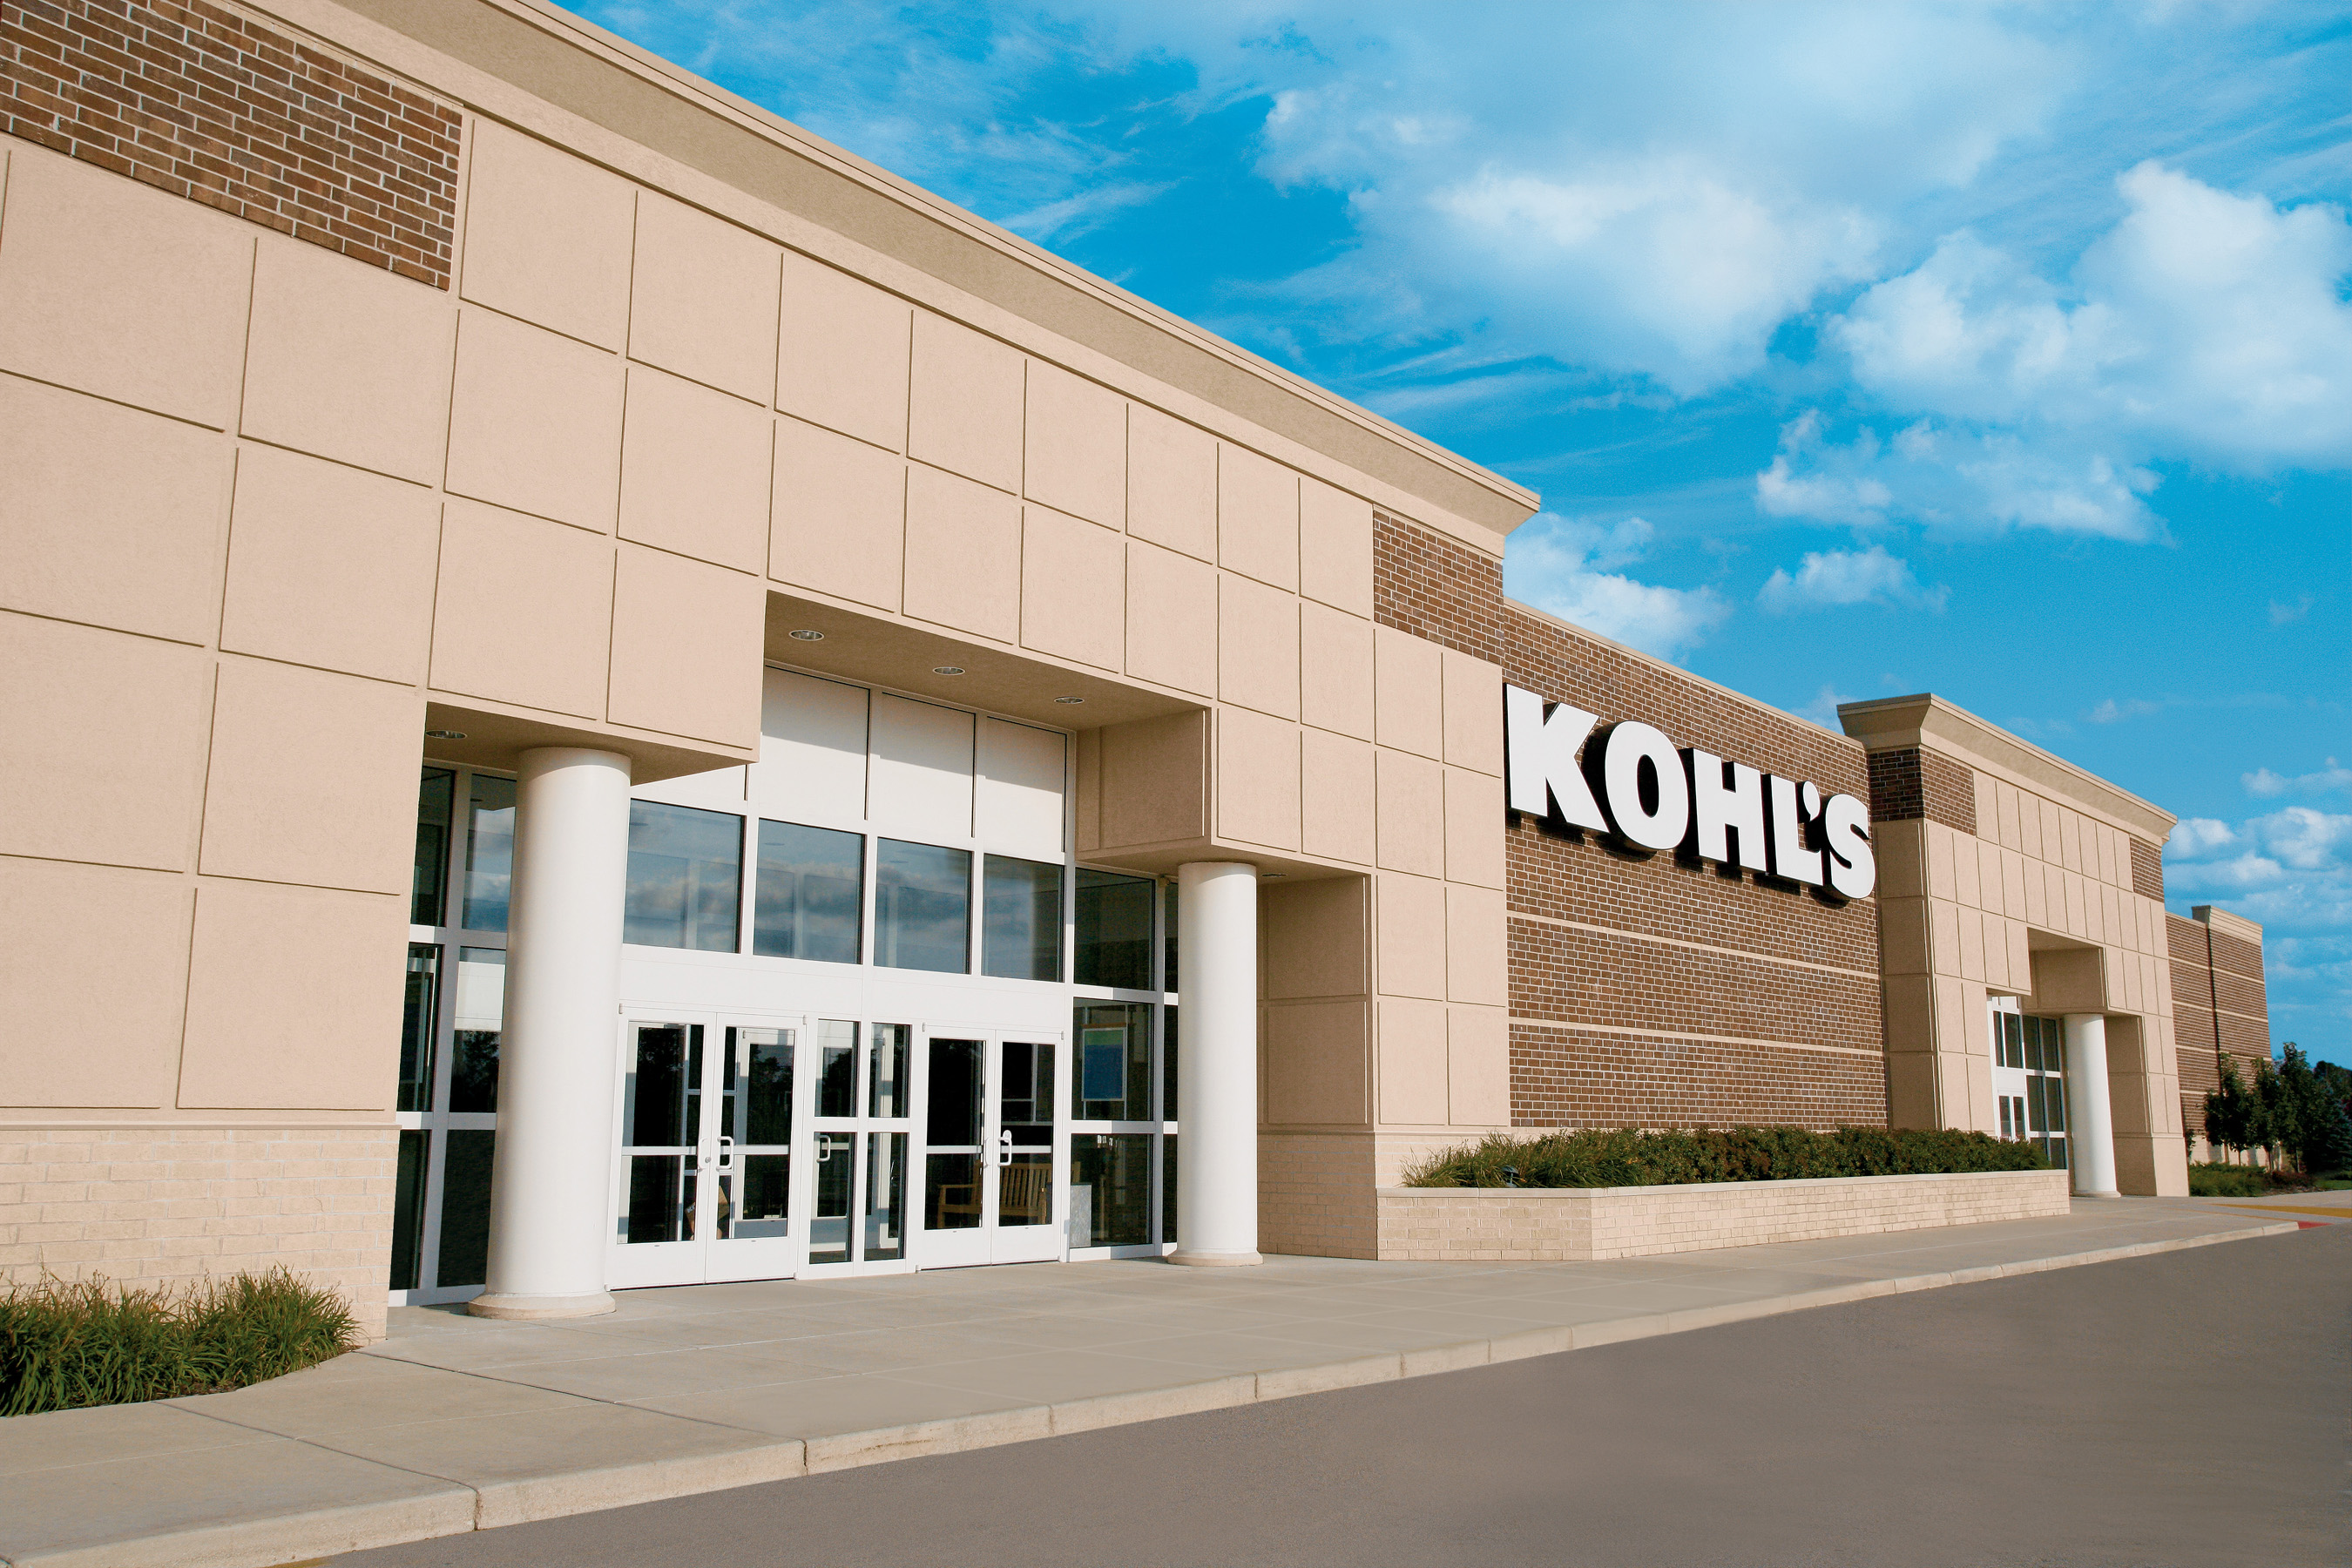 14 verified Kohls coupons and promo codes as of Dec 2. Popular now: 15% Off Kohl's with their Email Sign Up. Trust counbobsbucop.tk for Department Stores savings.